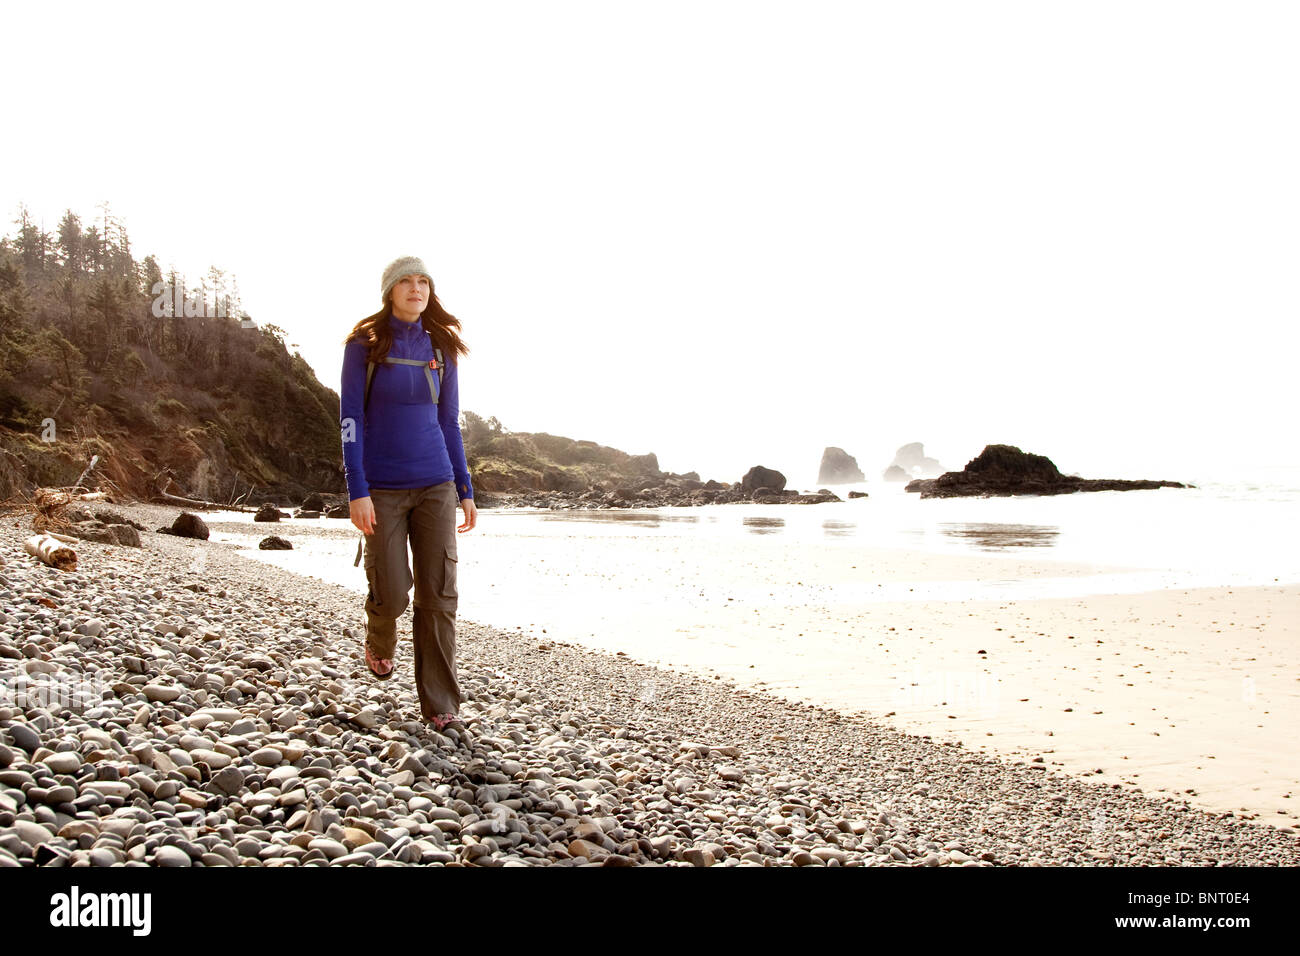 A woman hiking a secluded rocky beach. - Stock Image